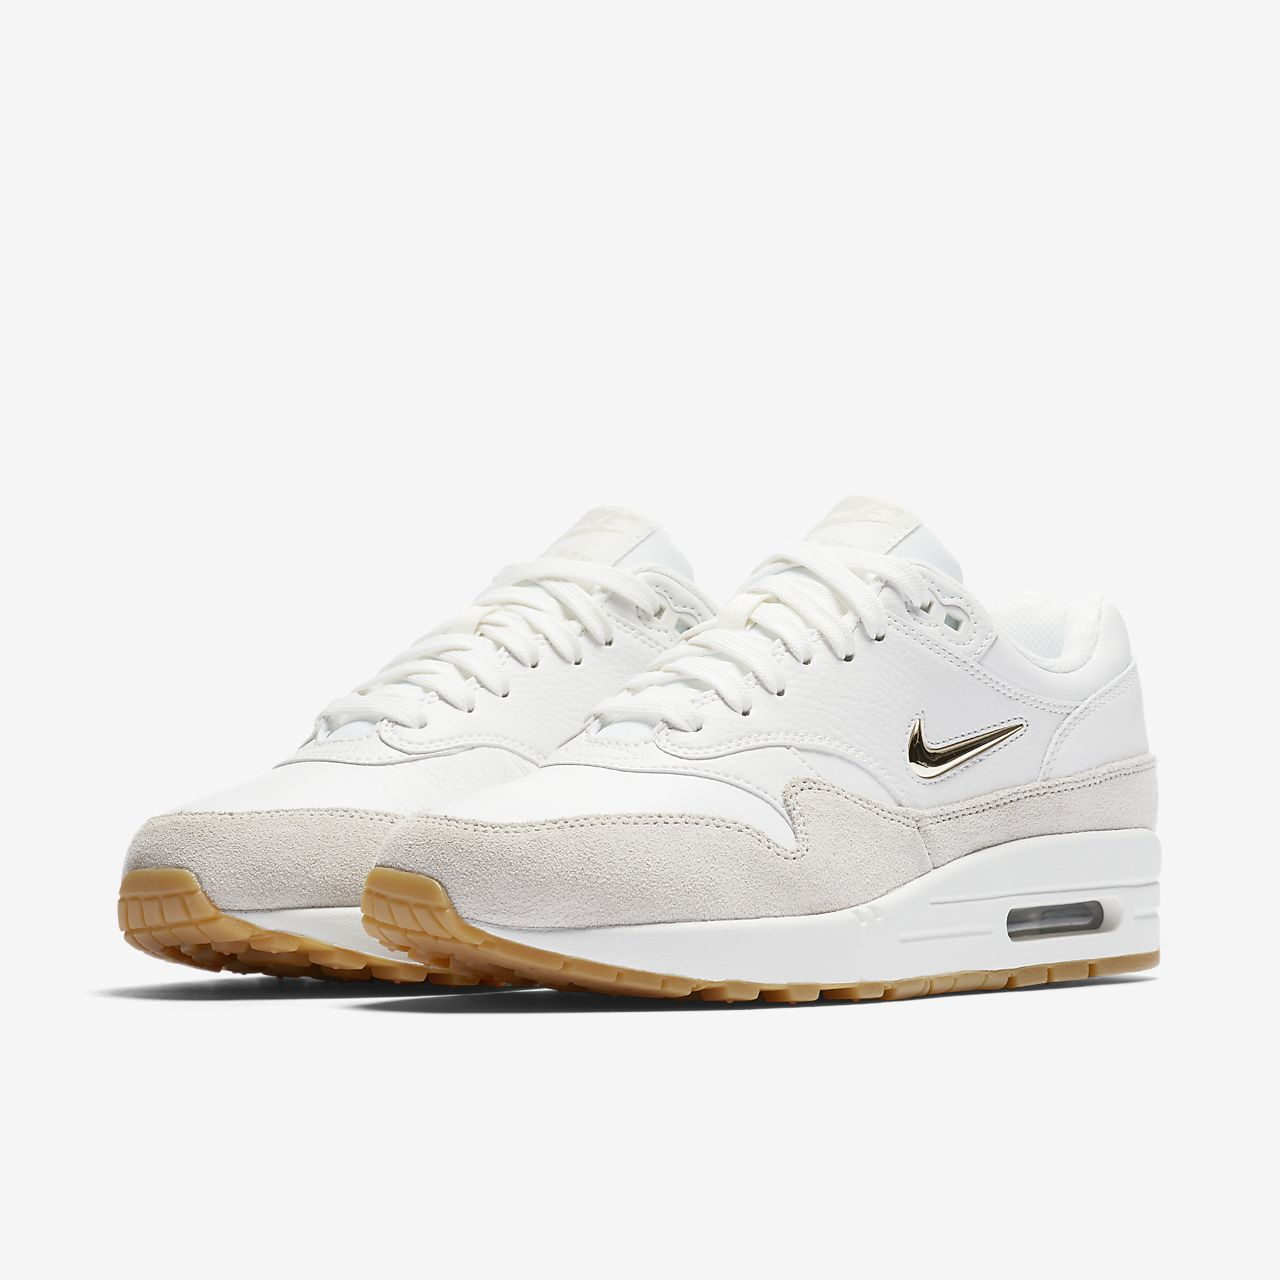 nike air max 1 jewel white nz|Free delivery!